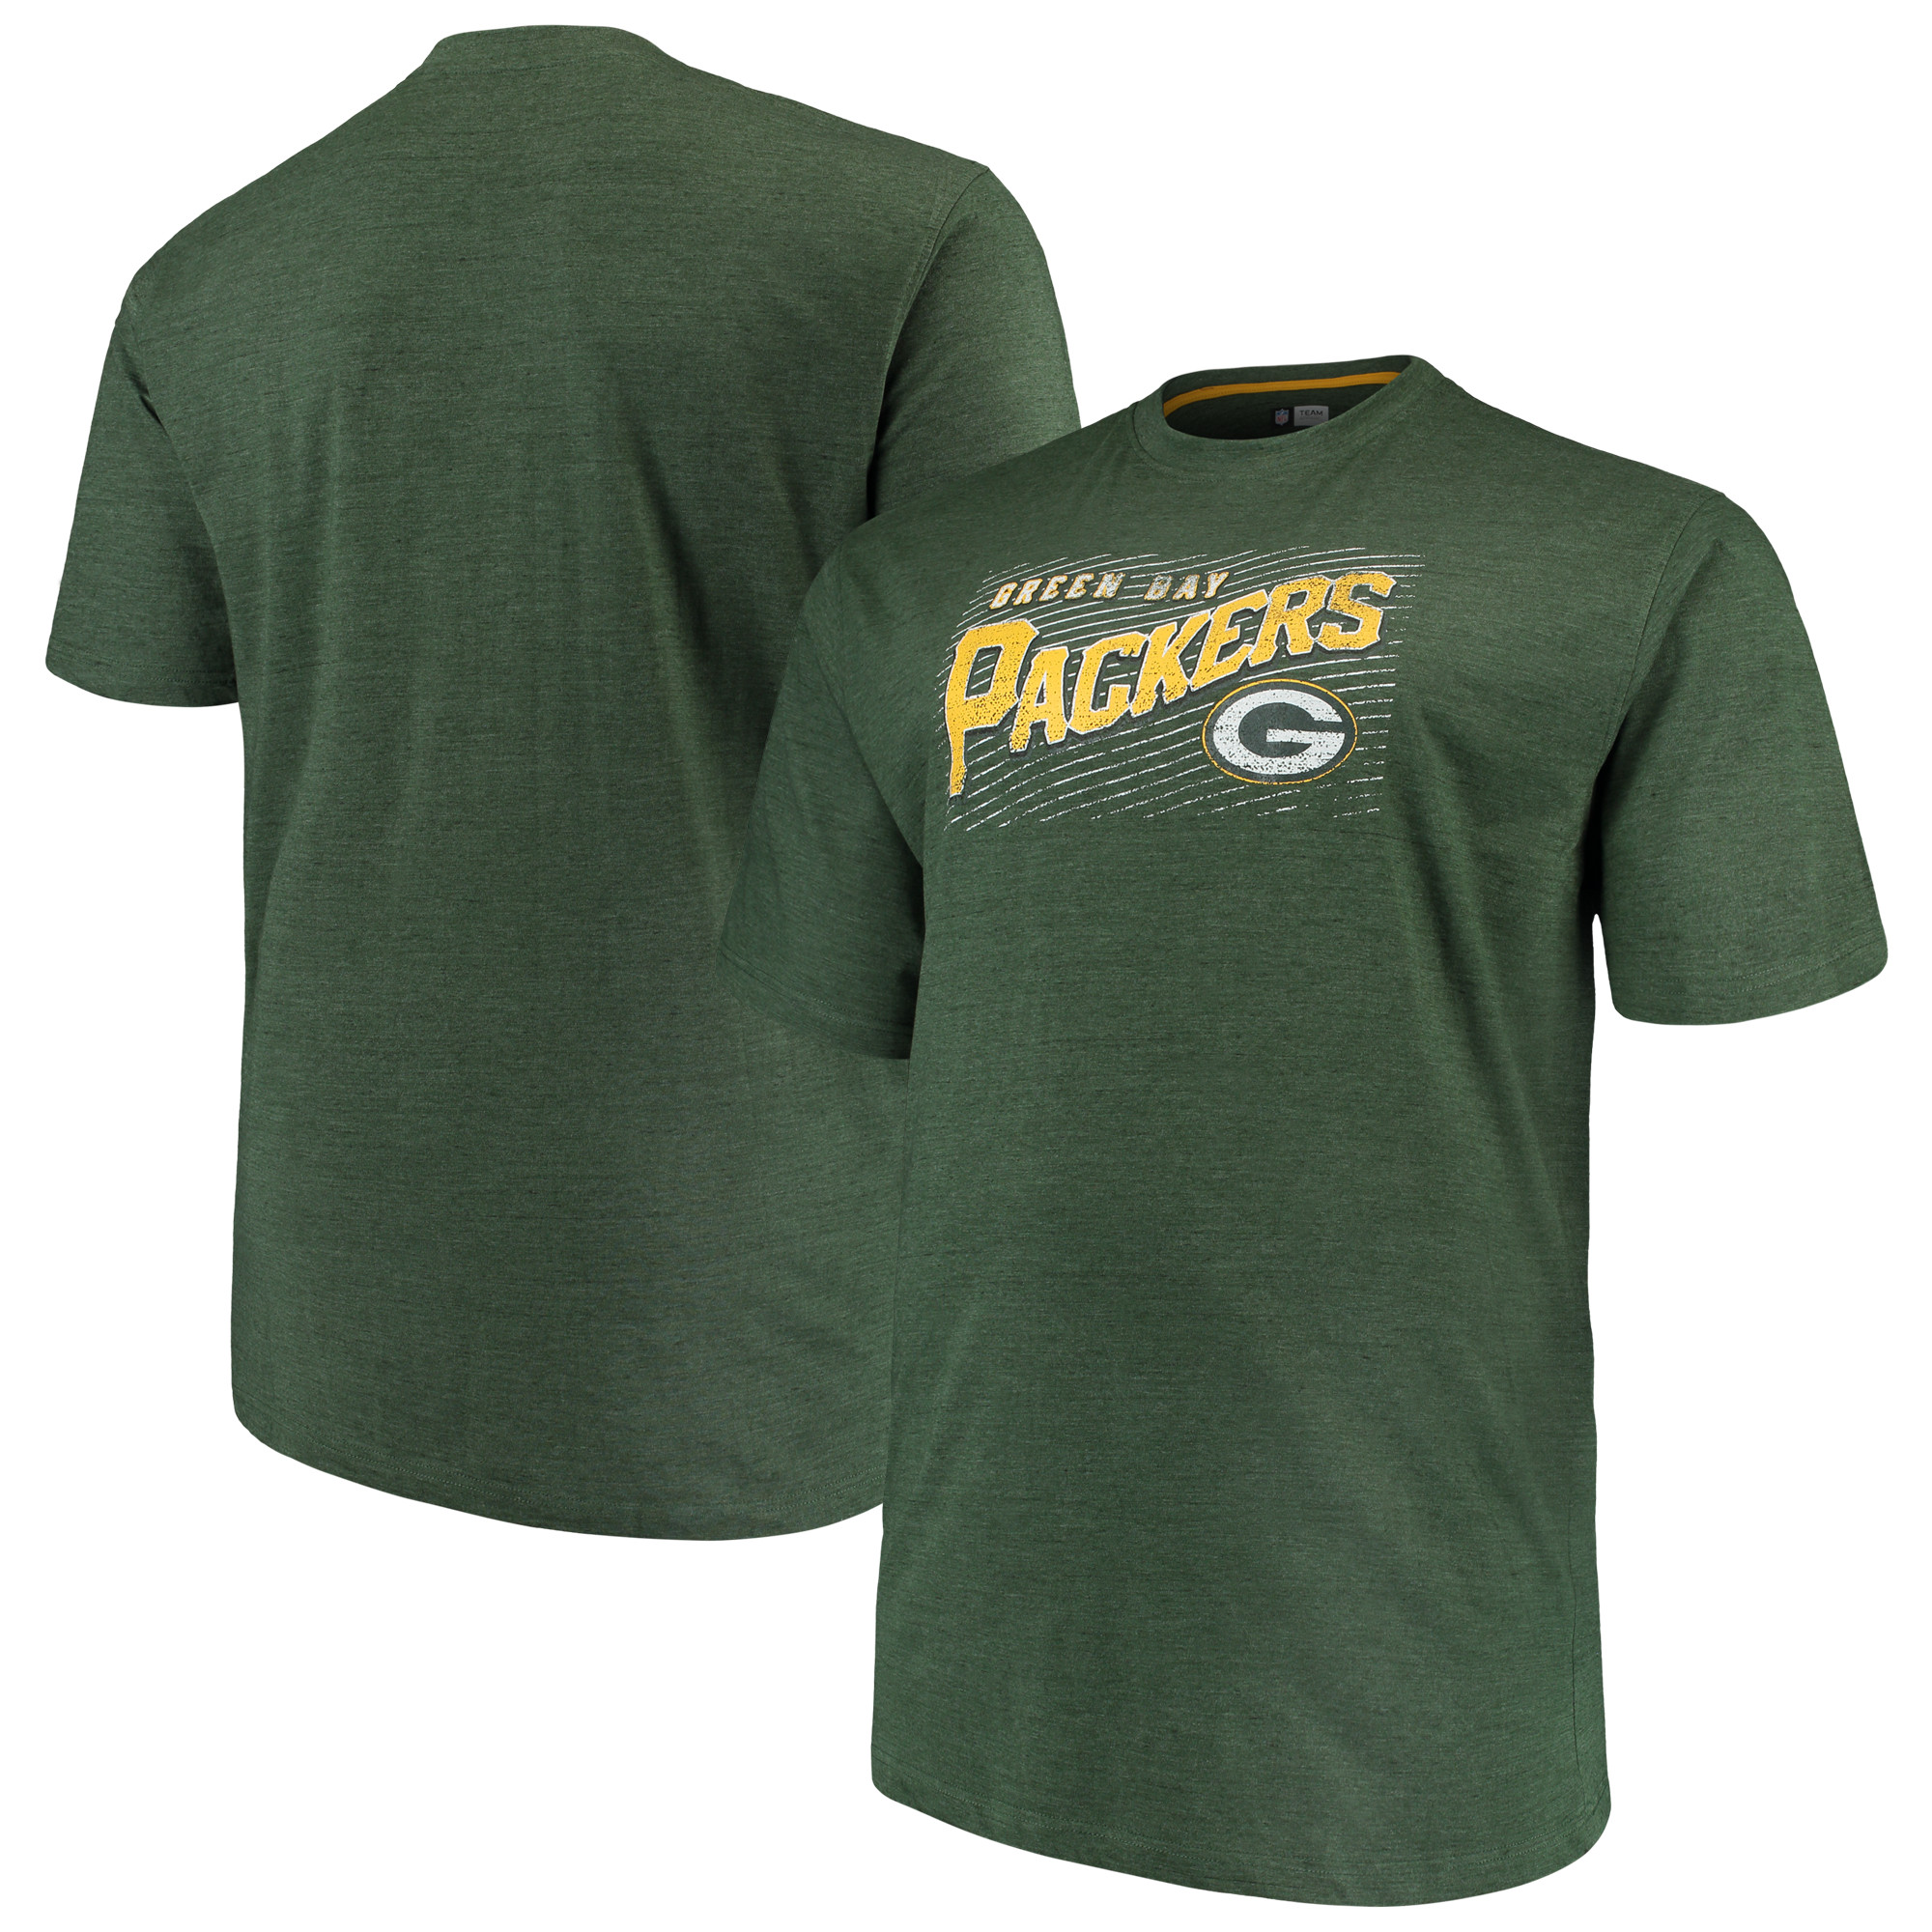 Men's Majestic Green Green Bay Packers Big & Tall Royal Domination Malt T-Shirt